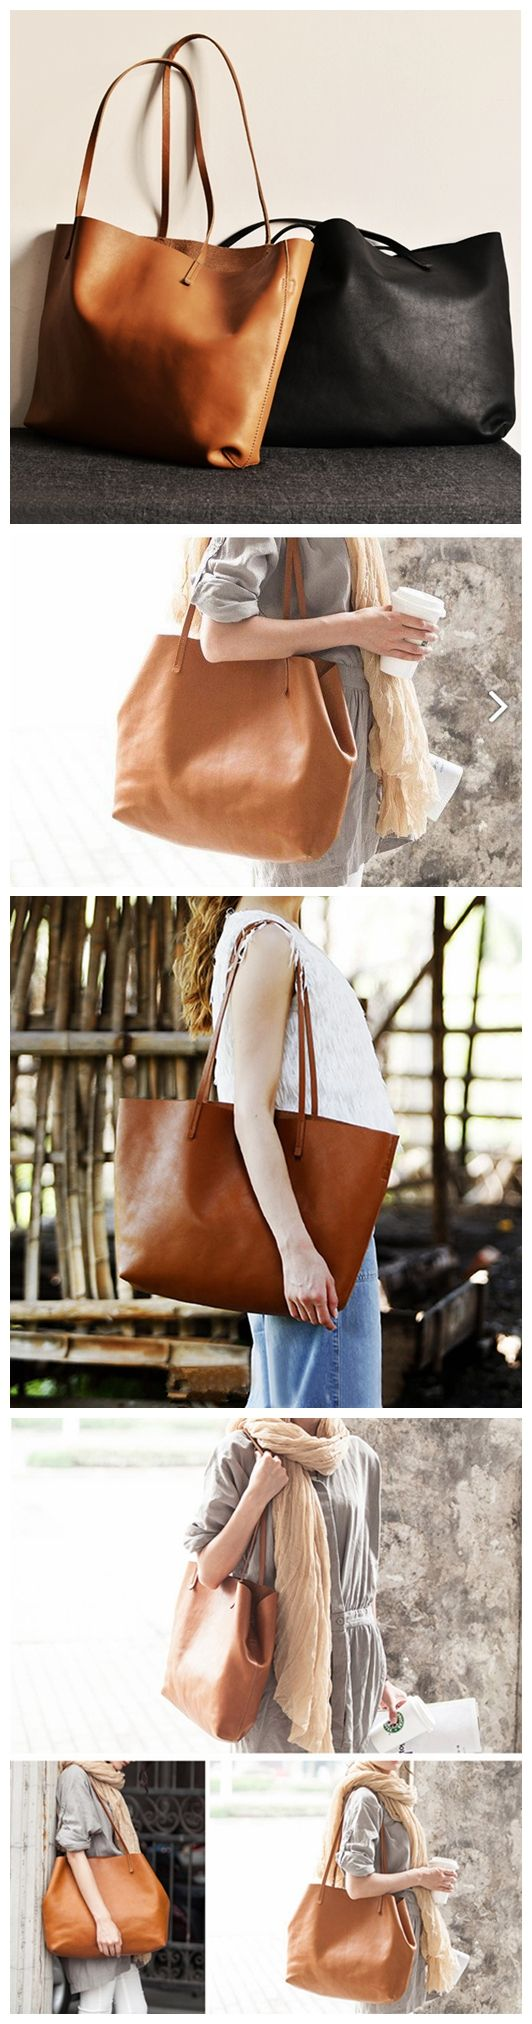 Handmade modern fashion leather big large tote bag shoulder bag handbag for women 14074 Overview: Design: Fashion & Modern Leather Women Large Tote Shopper Bag In Stock: 4-5 days For Making Include: O